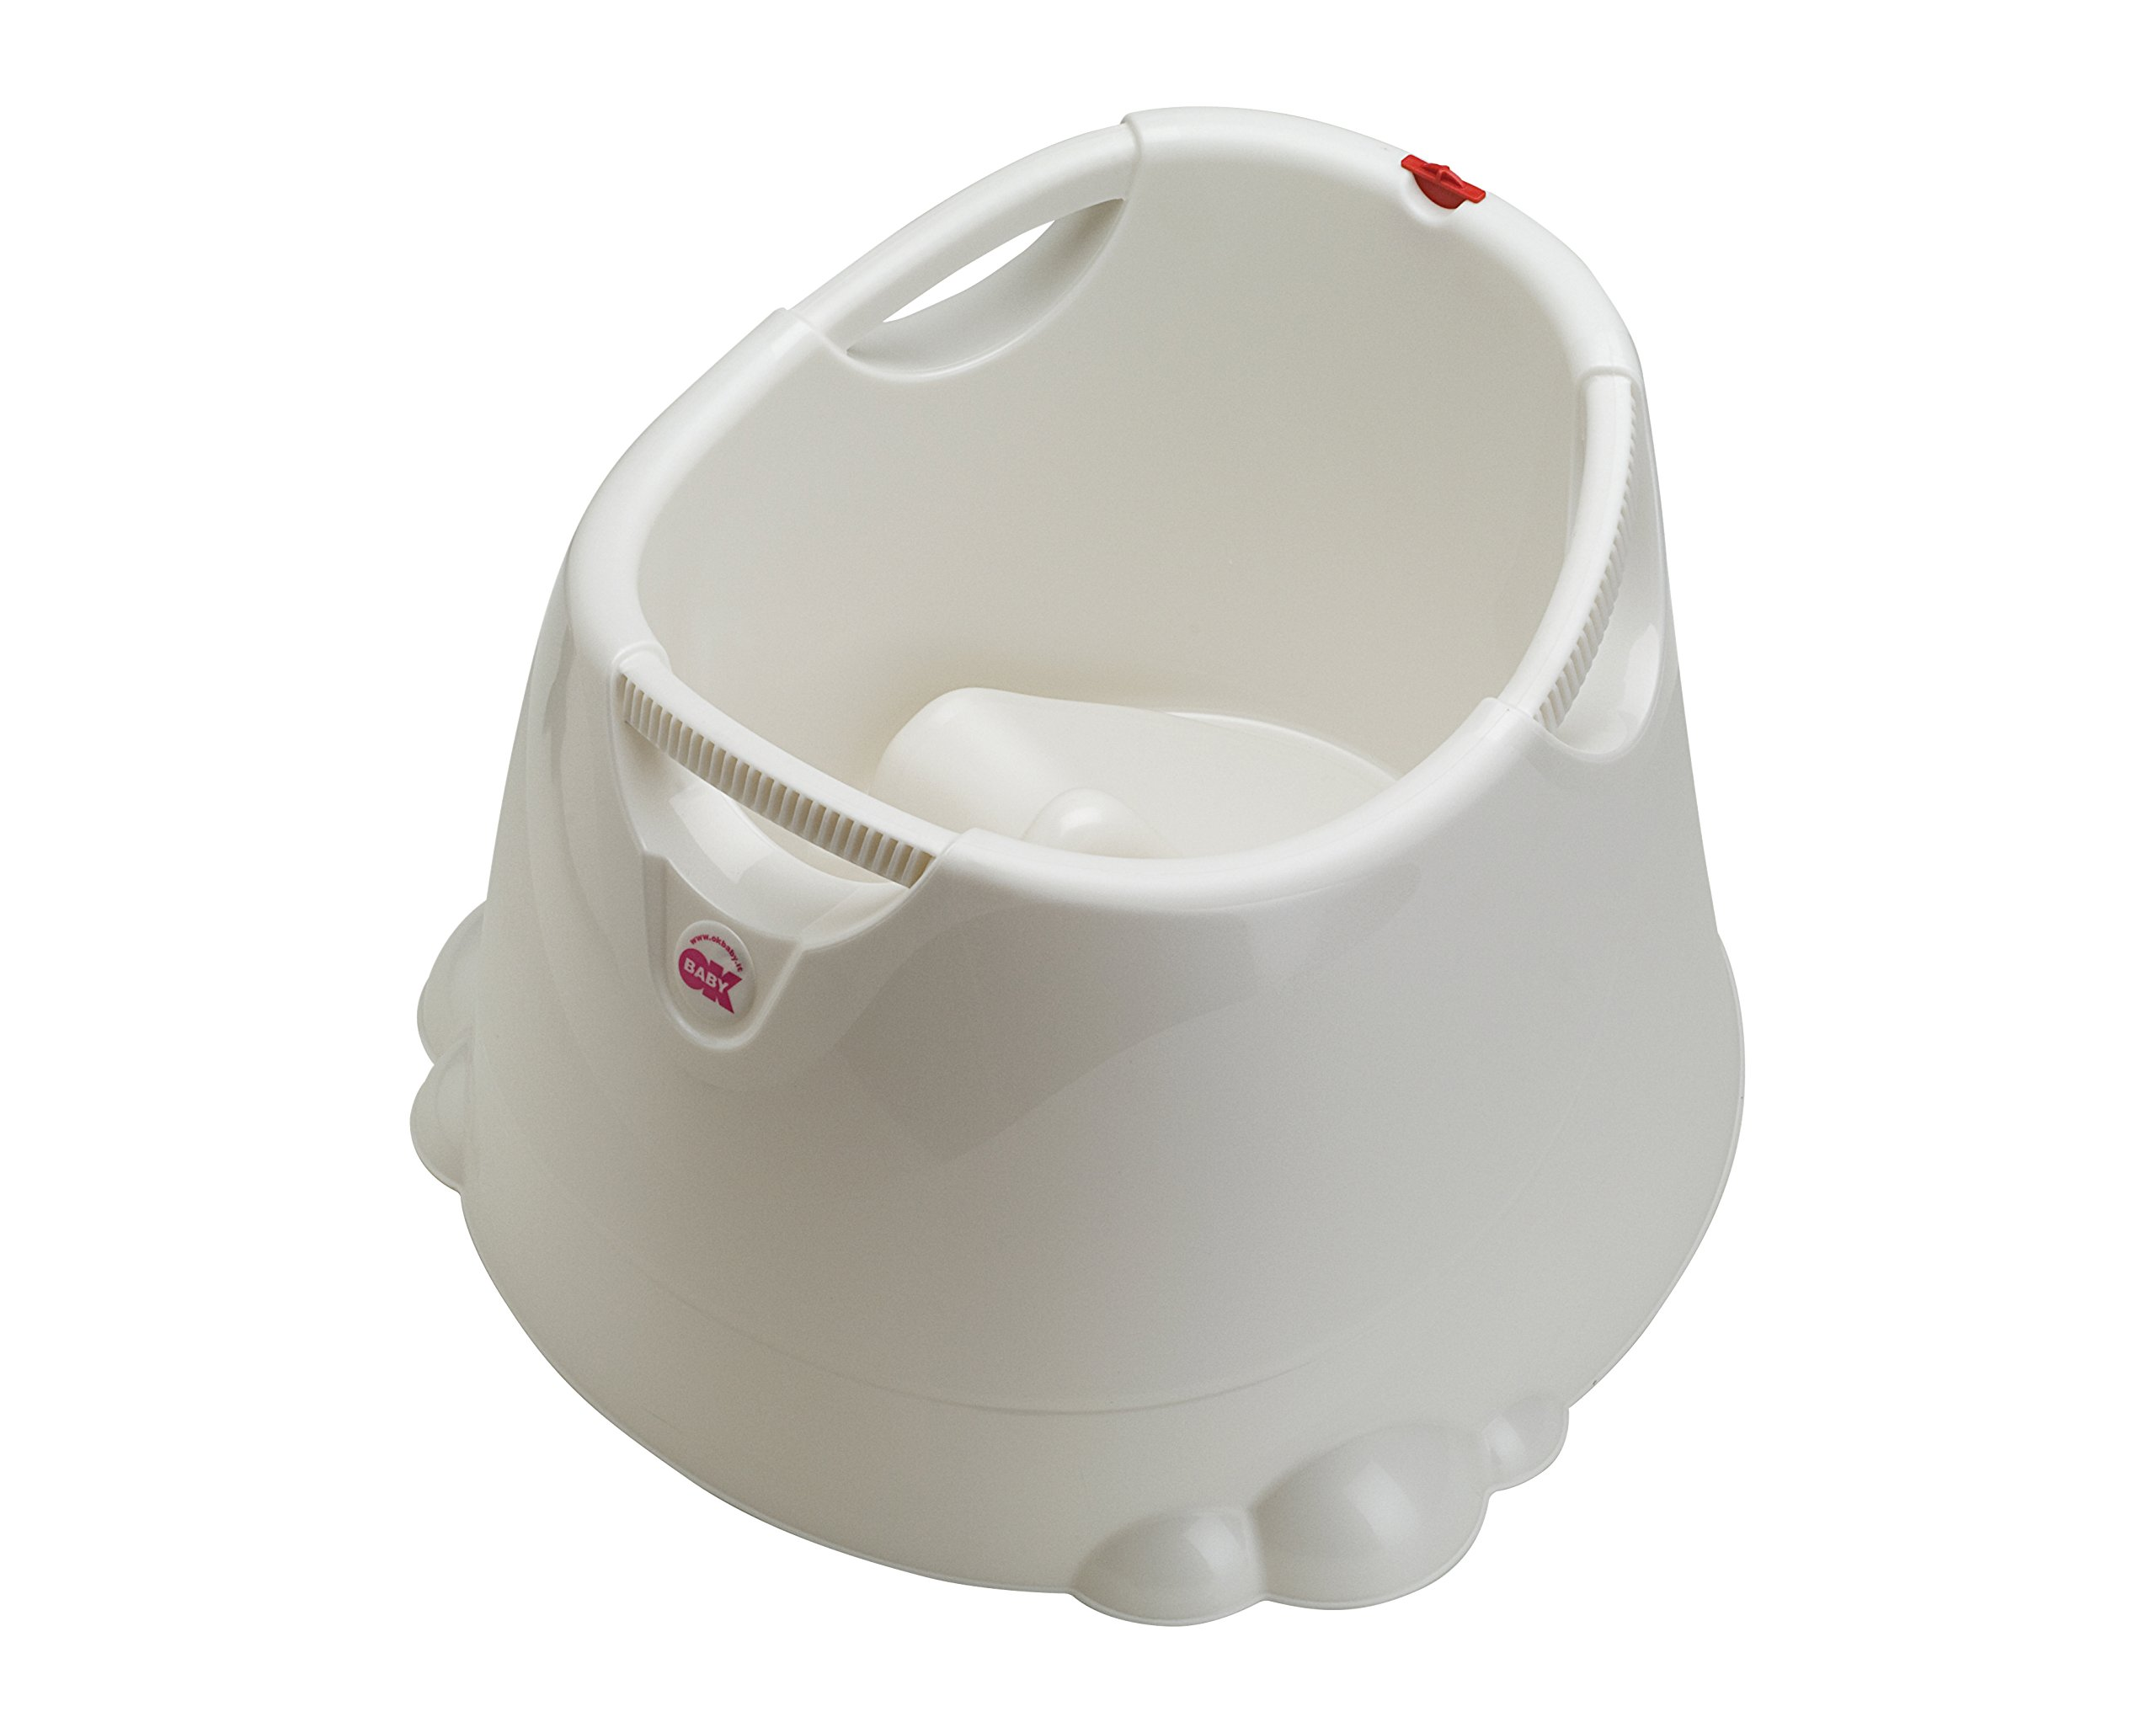 OKBaby Opla Shower Bath and Baby Pool, Pearl White